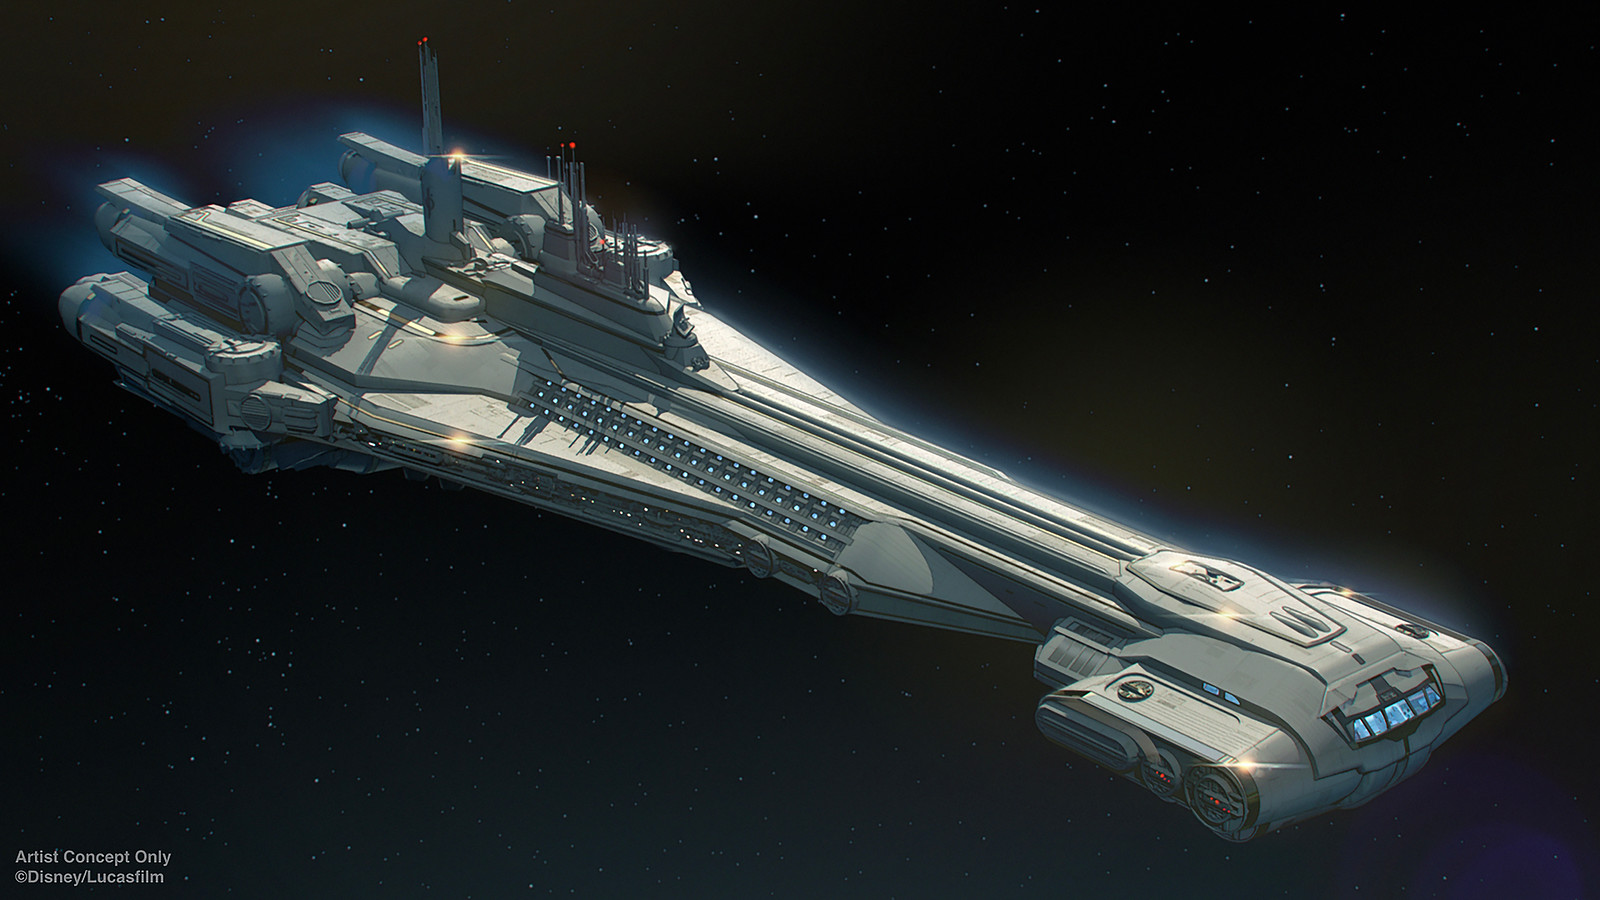 Star Wars: Galactic Starcruiser Ship